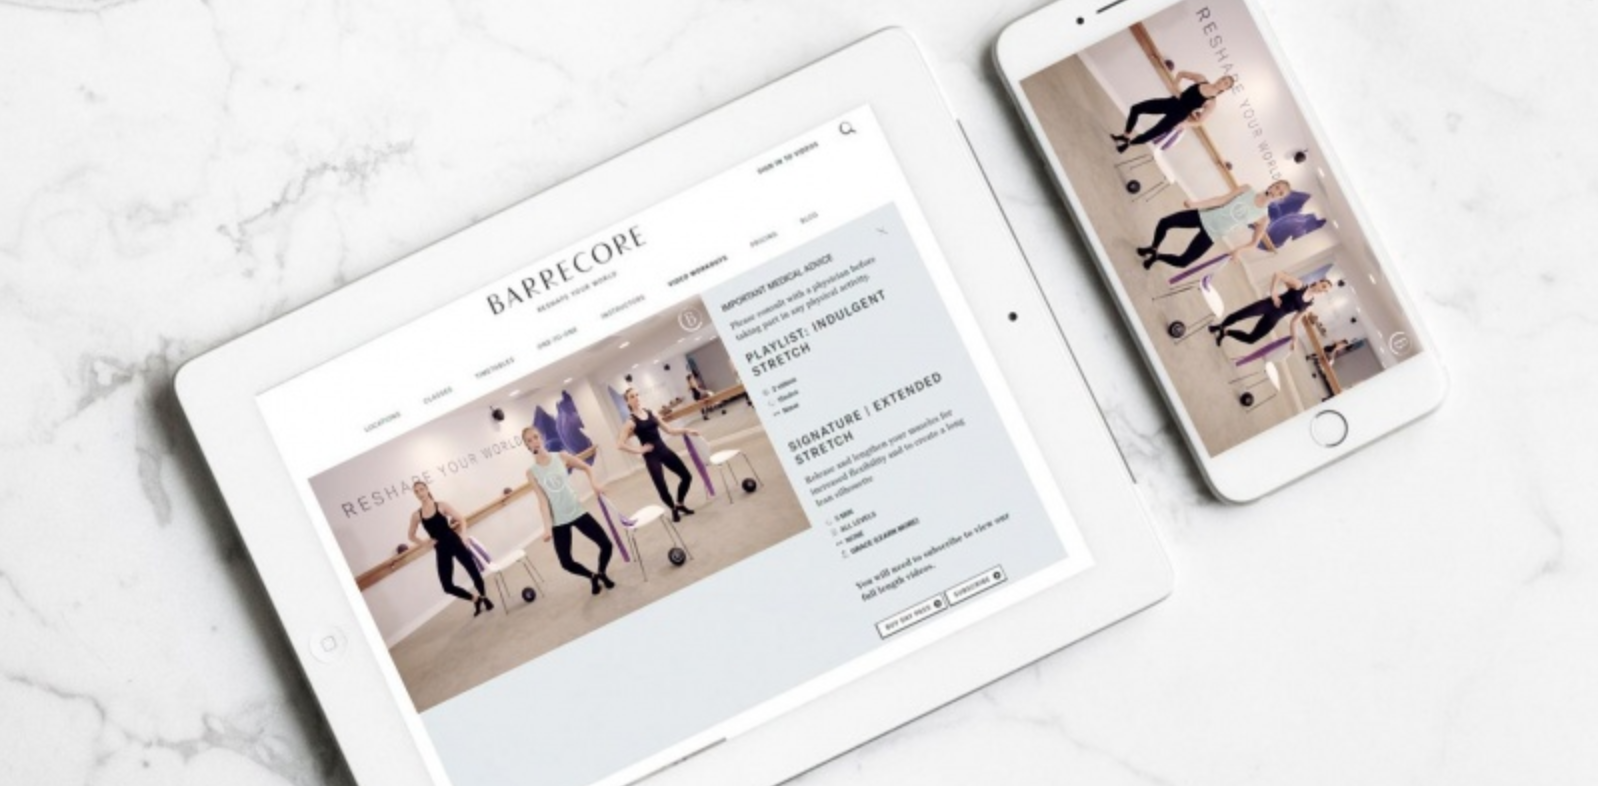 The best online fitness classes